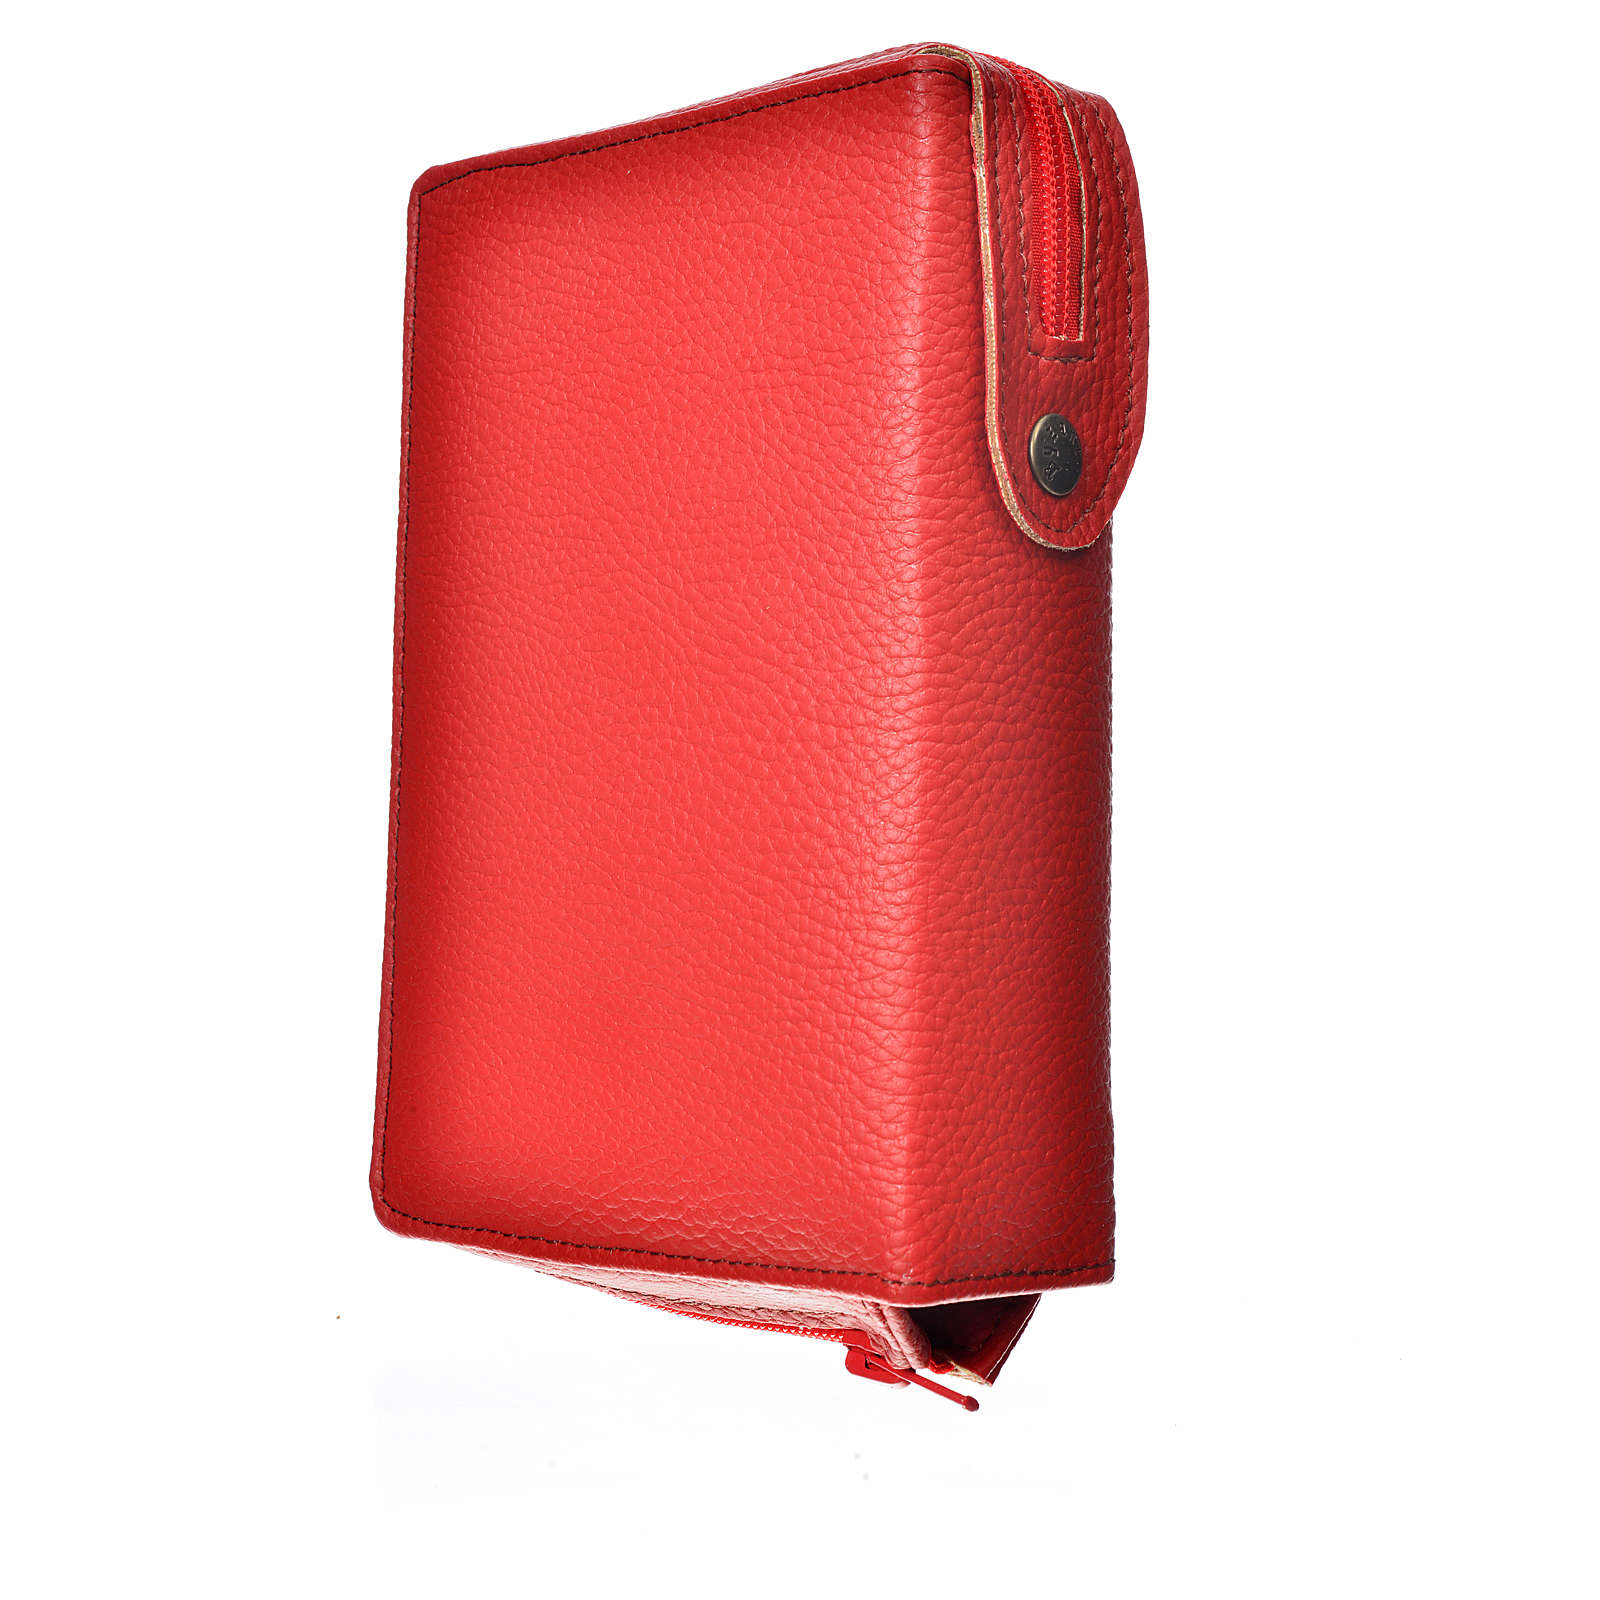 Ordinary Time III cover, red bonded leather with image of the Christ Pantocrator 4